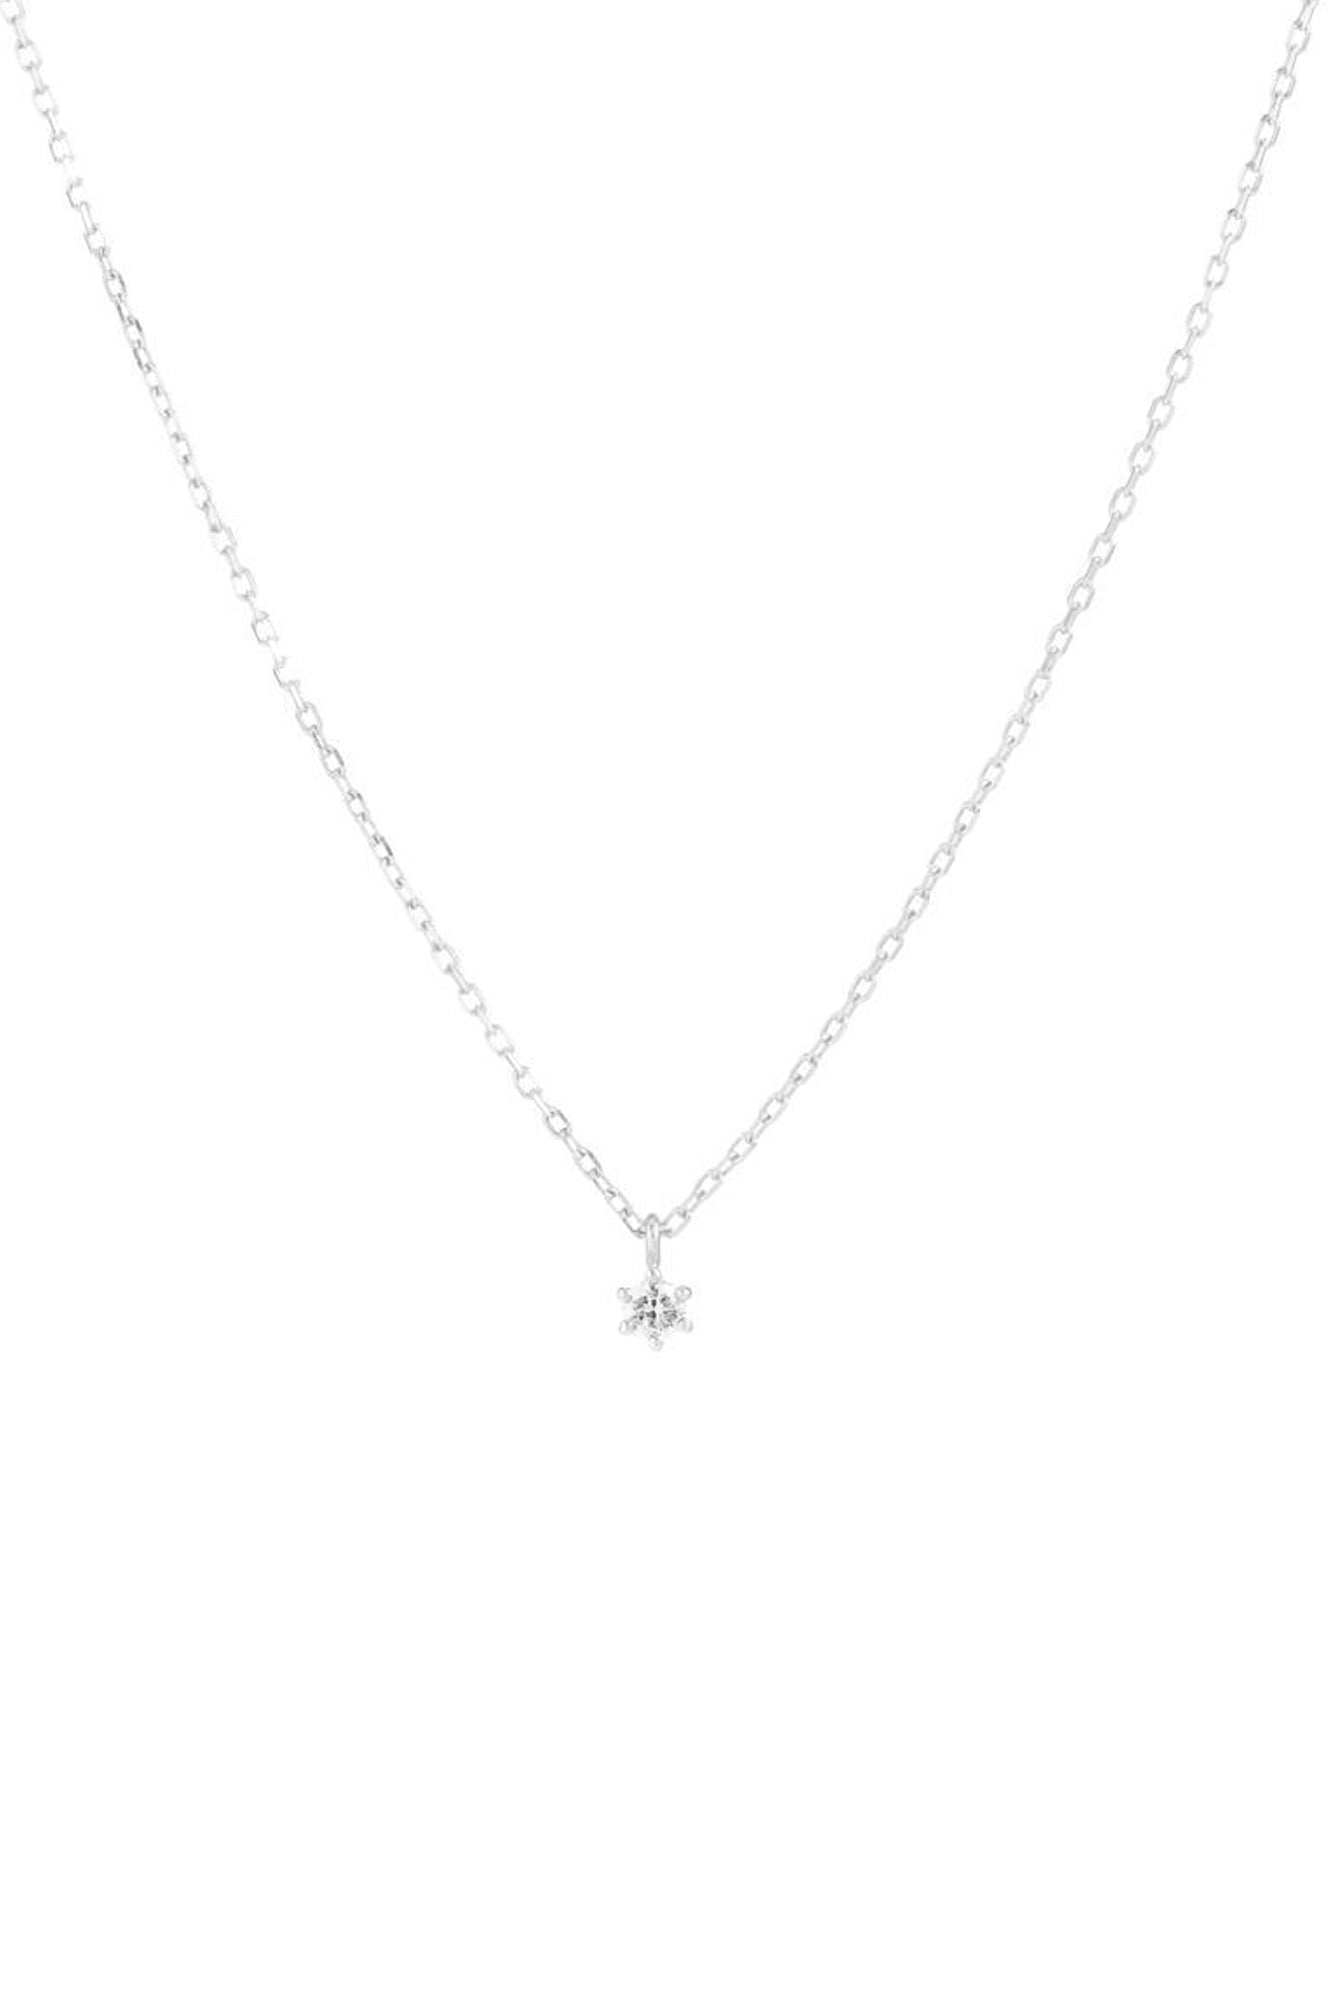 14k White Gold Sweet Droplet Diamond Necklace